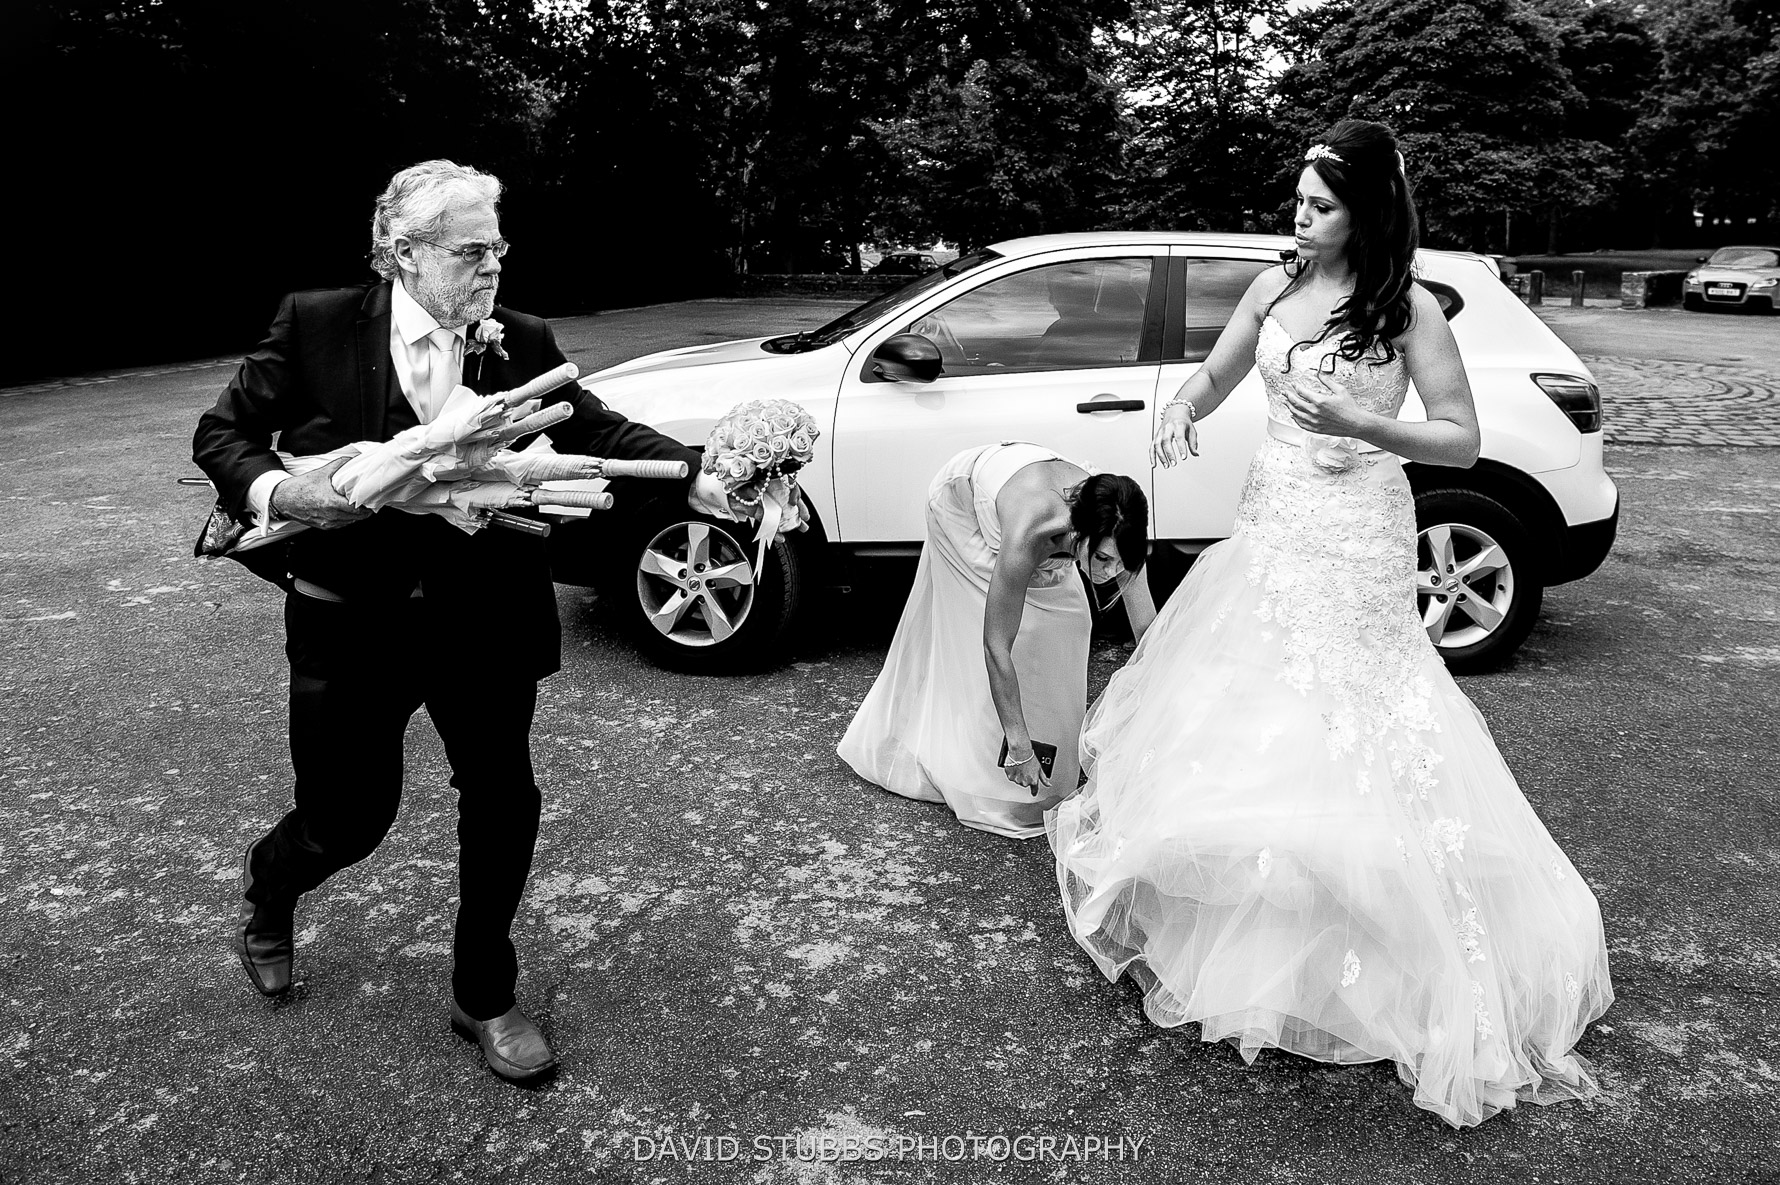 panic out of wedding car